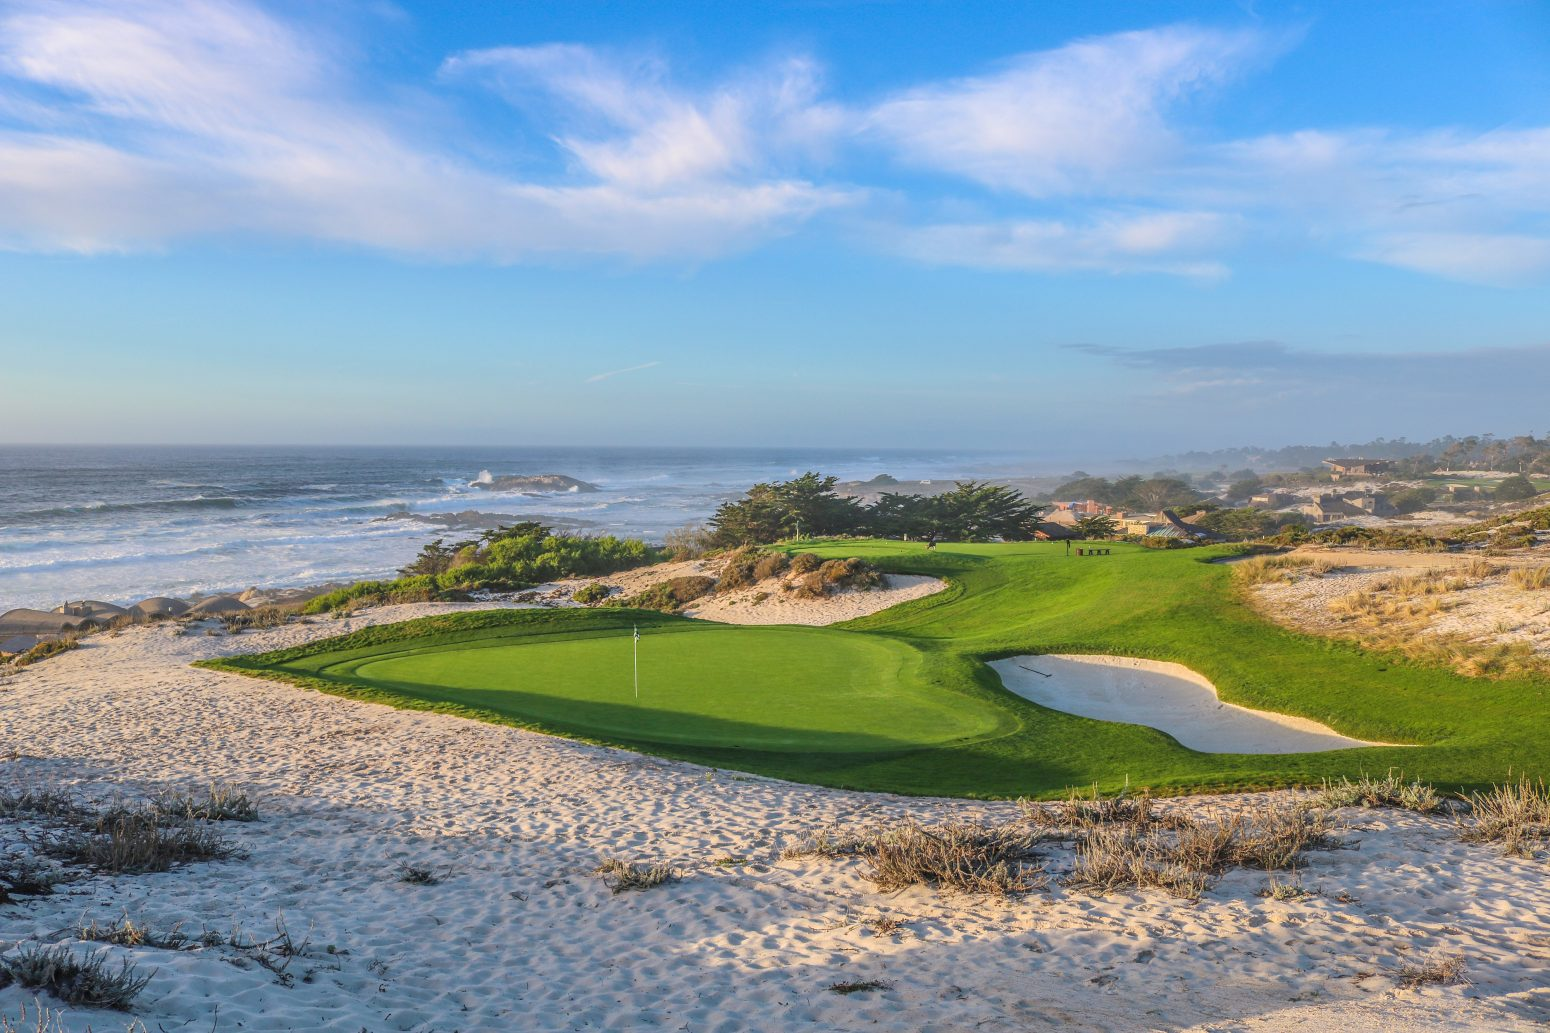 Overview of golf course named Spyglass Hill Golf Course